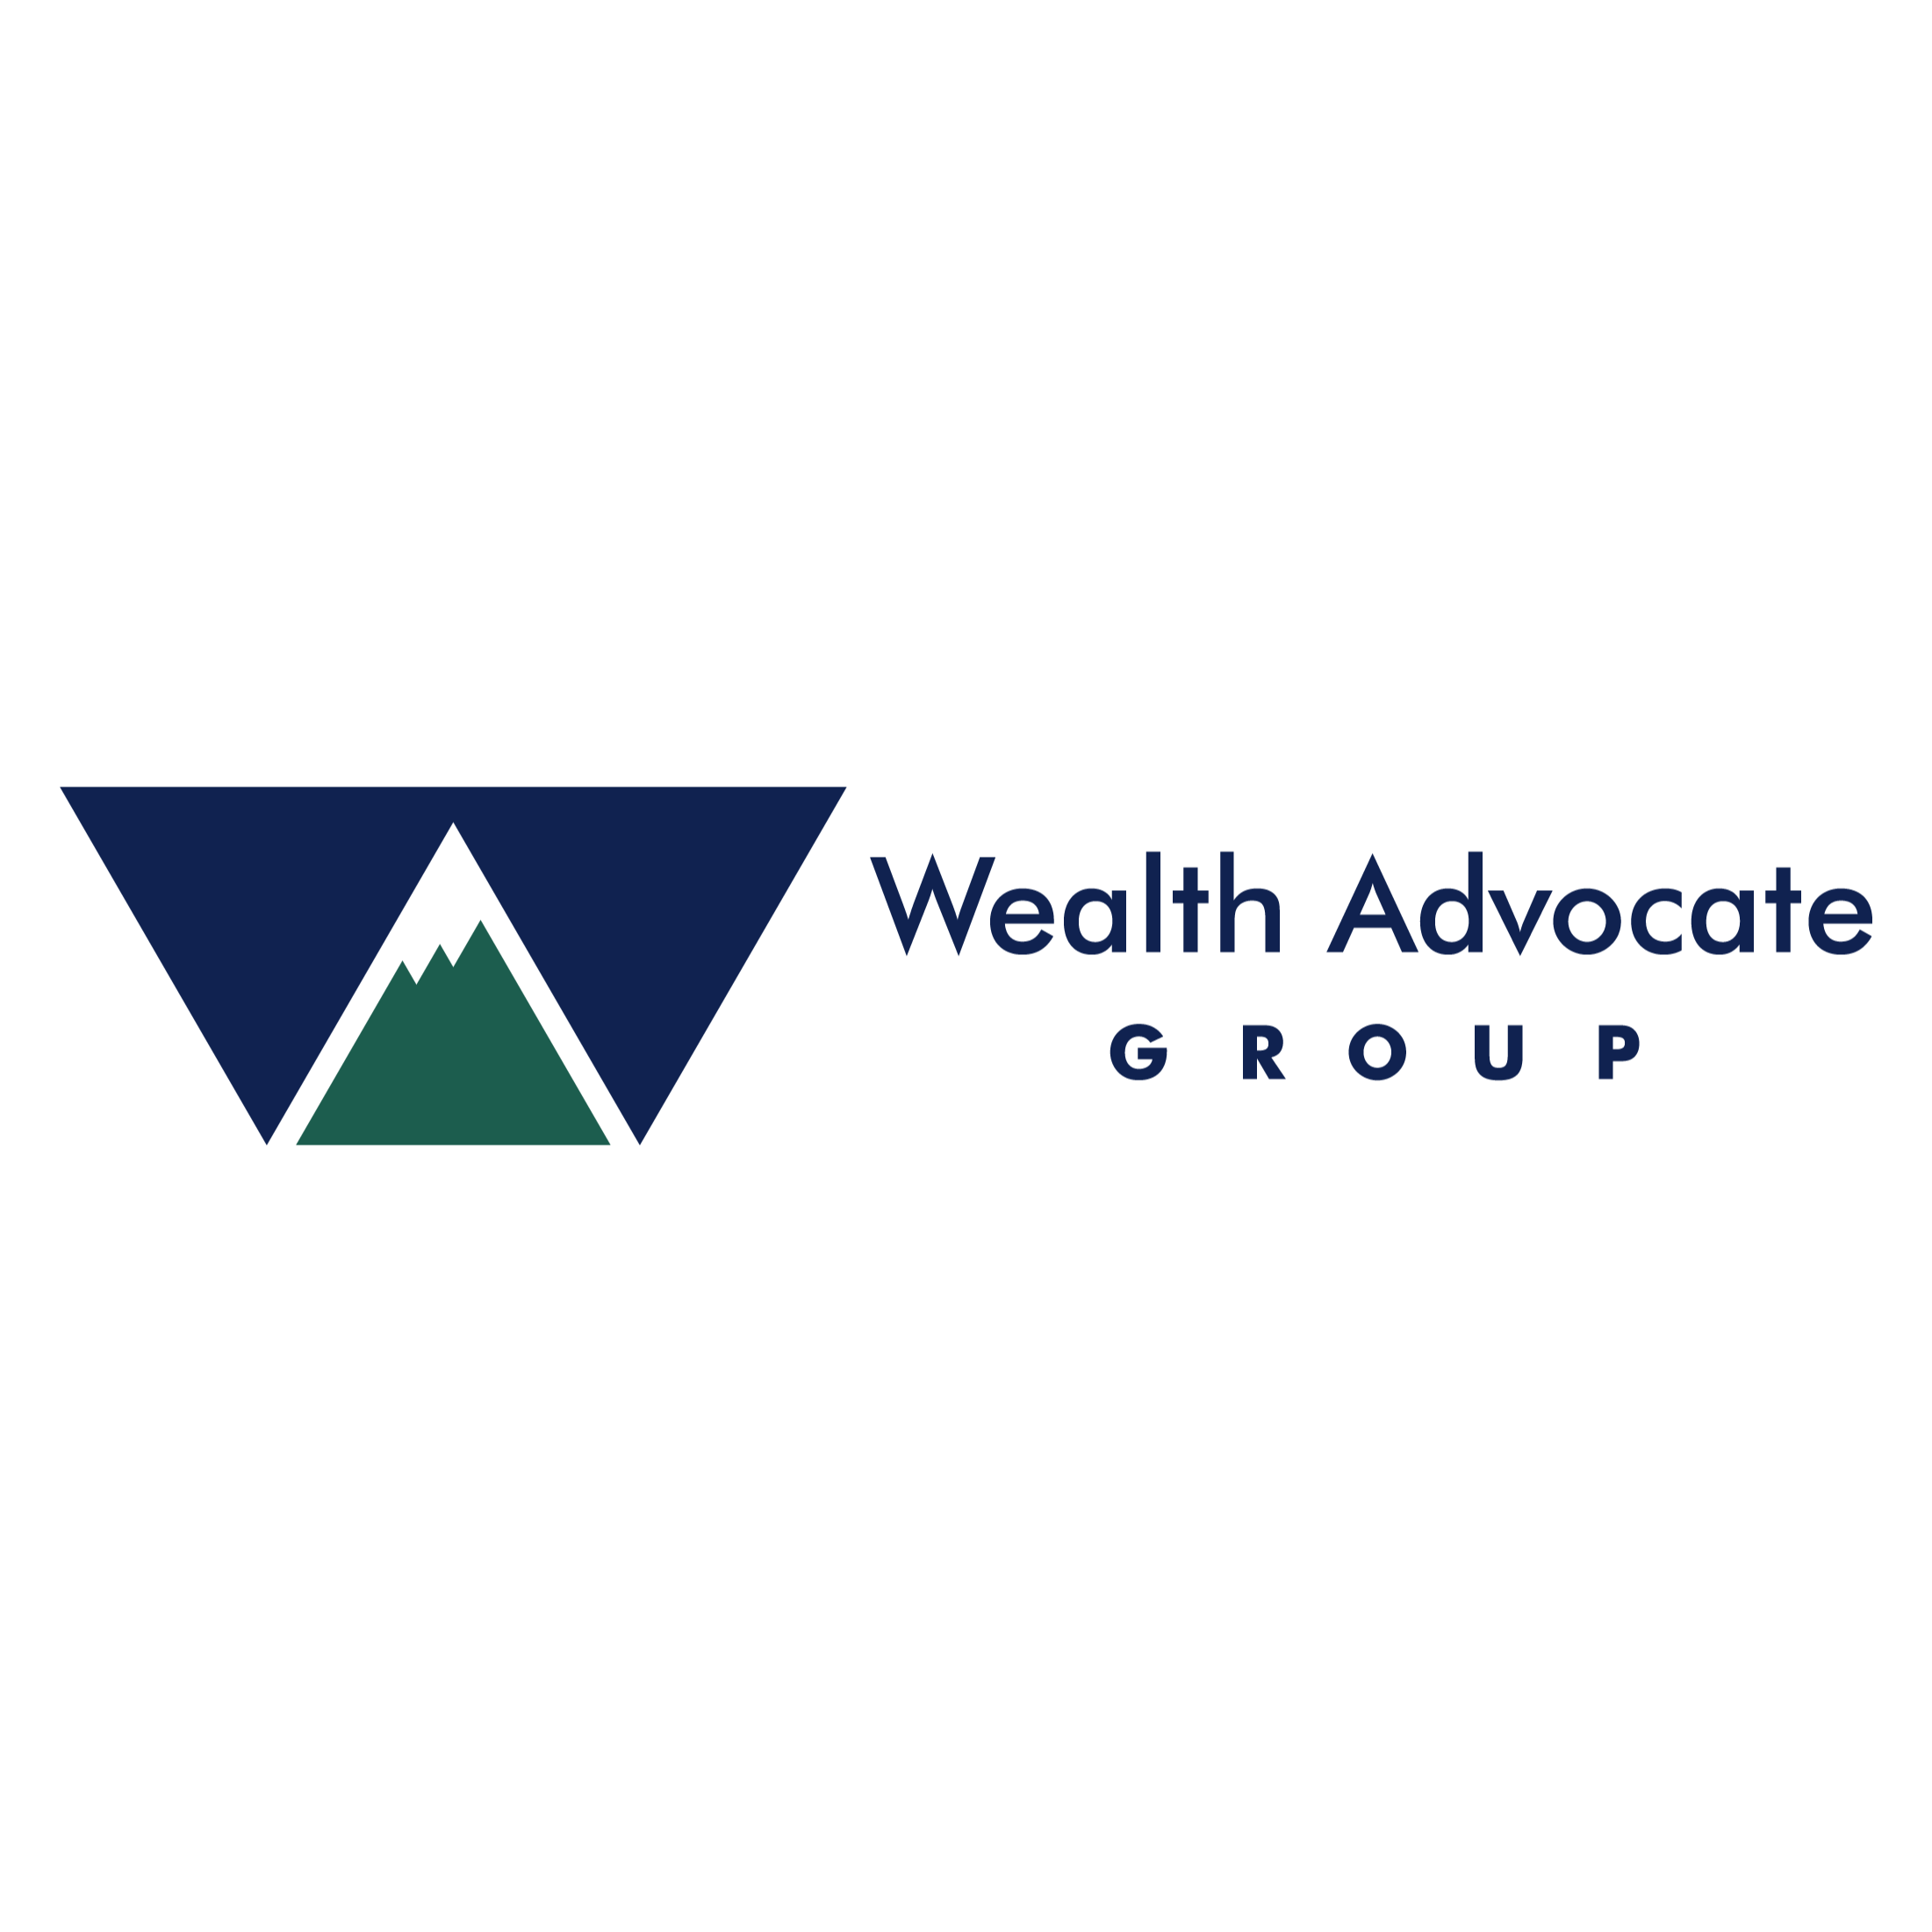 Wealth Advocate Group